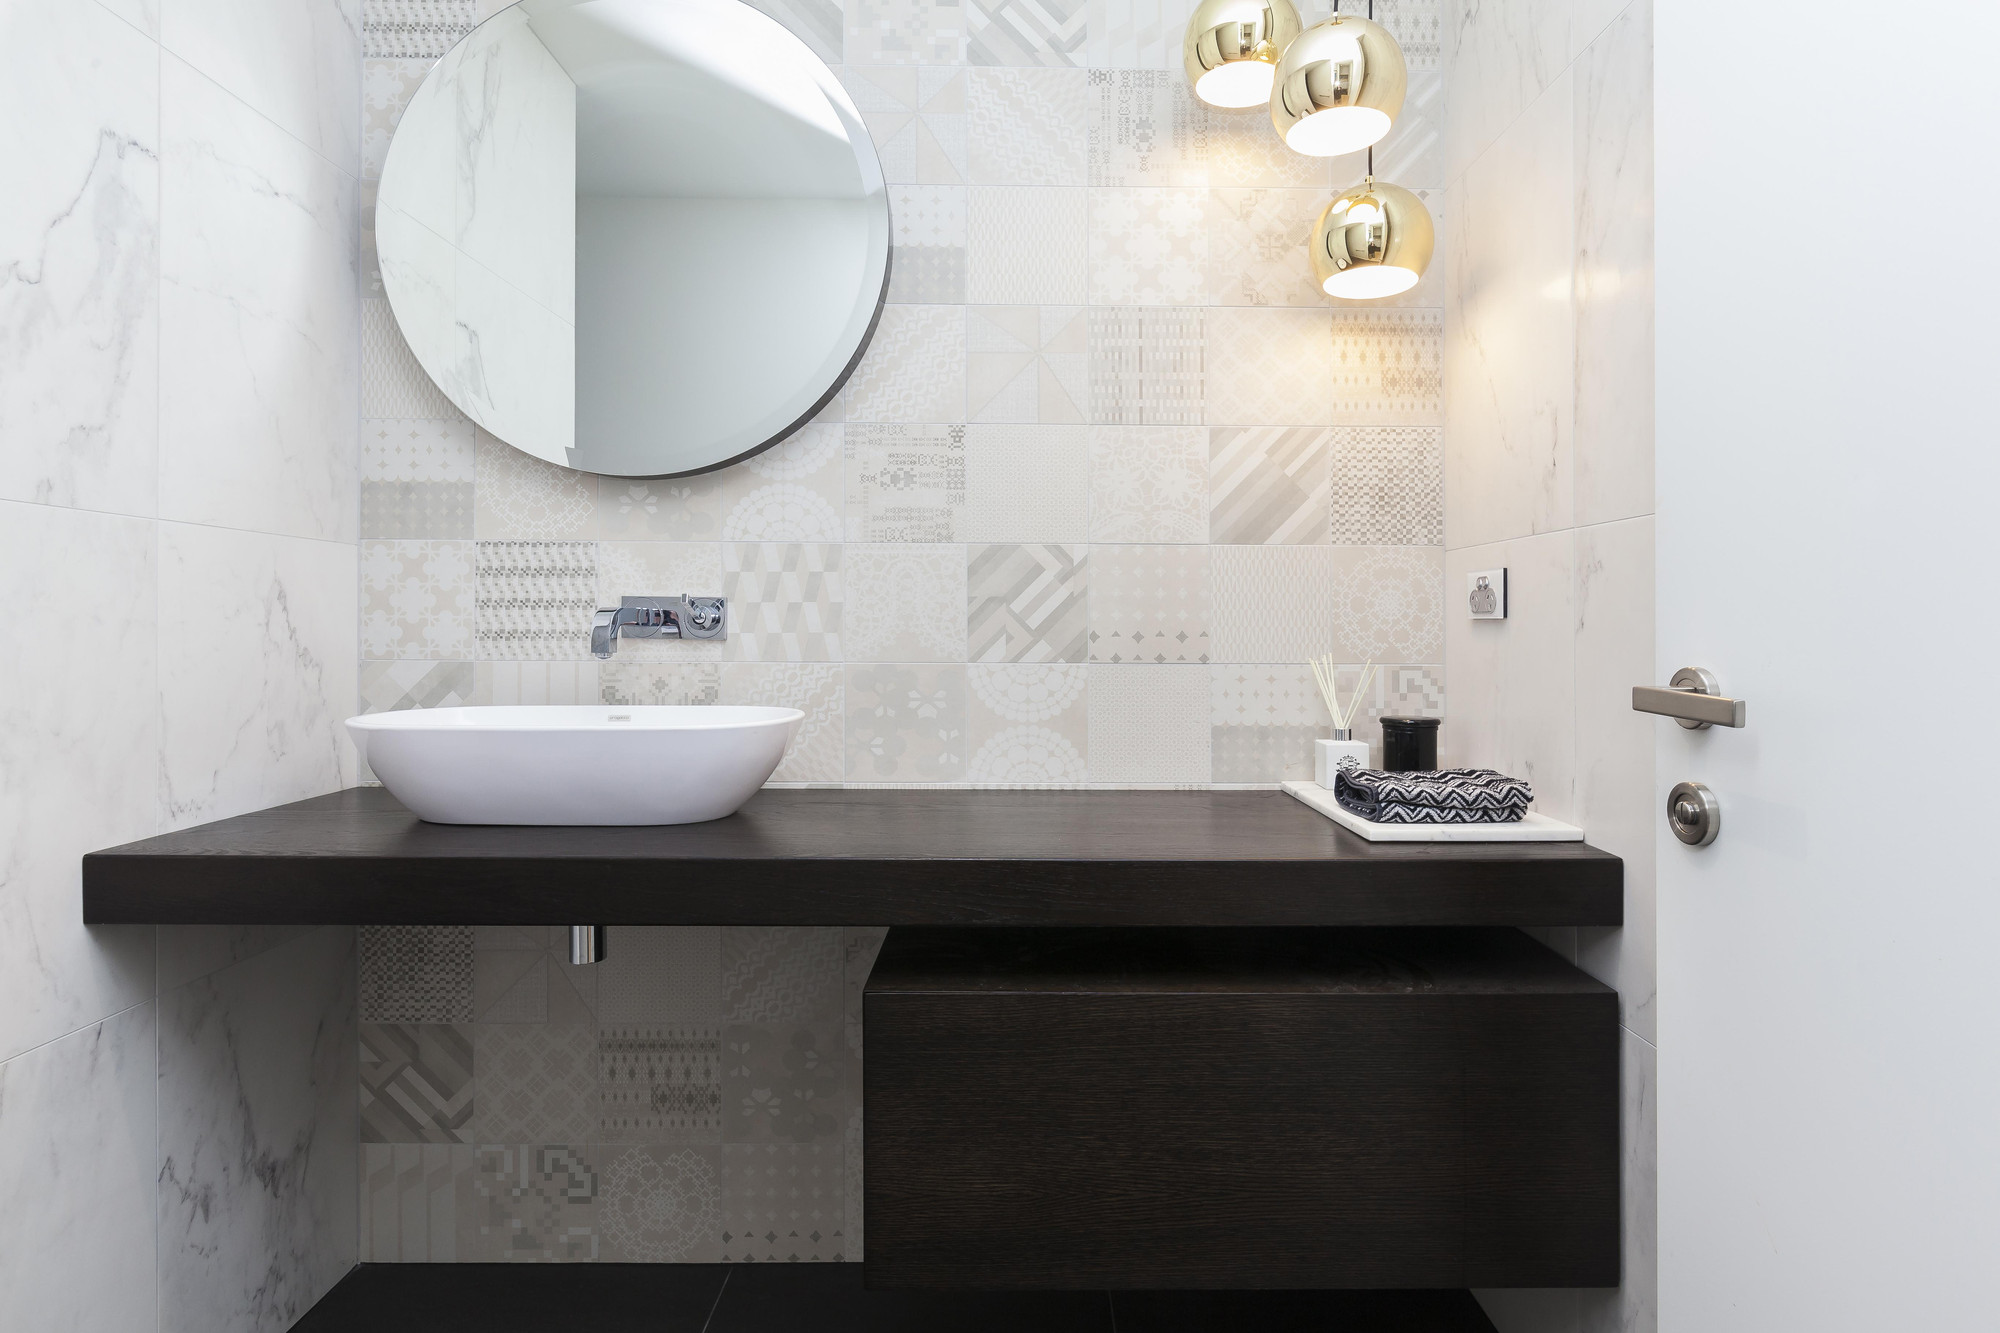 Quality hardware, fittings, mosaic tiling and marble make for a beautiful bathroom